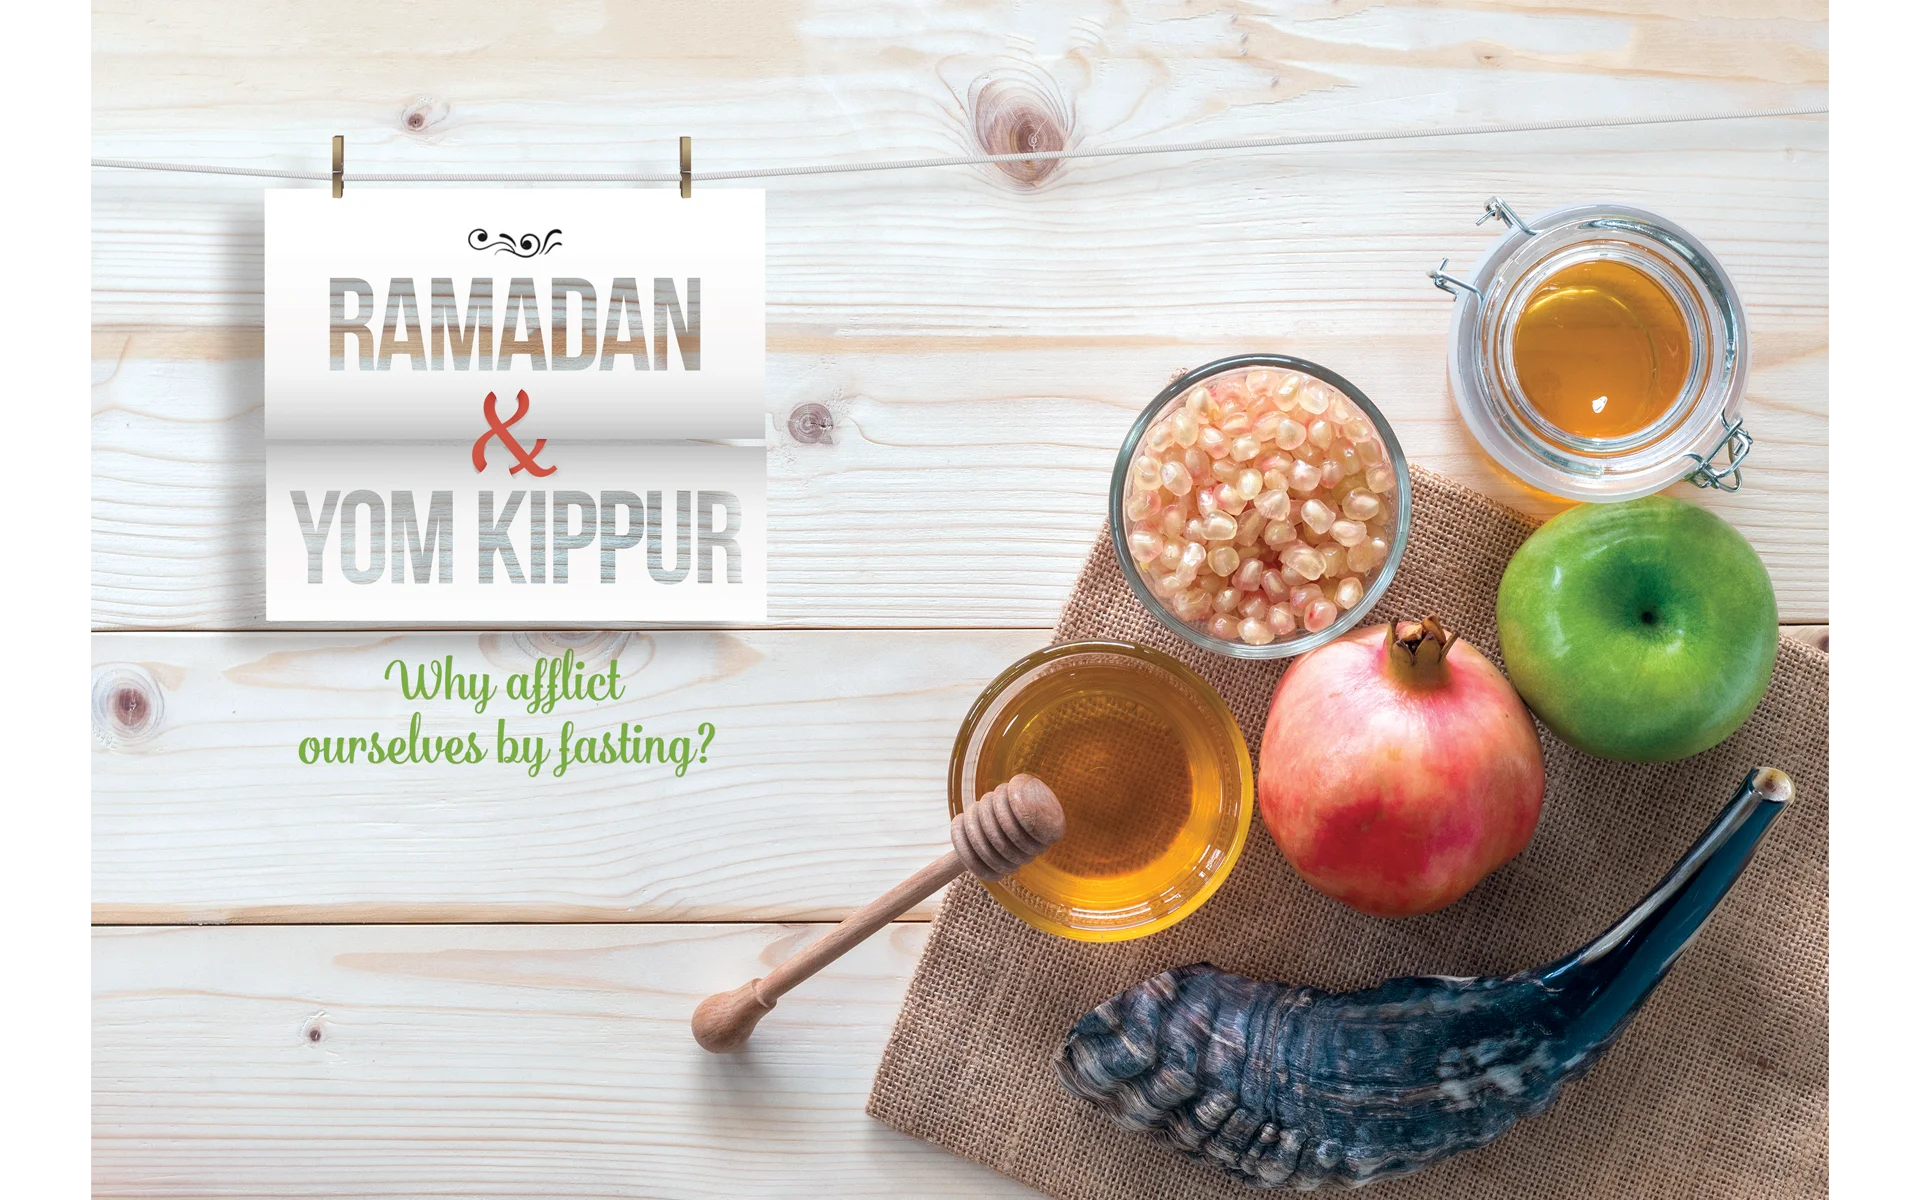 Ramadan and Yom Kippur: Why Afflict Ourselves By Fasting?